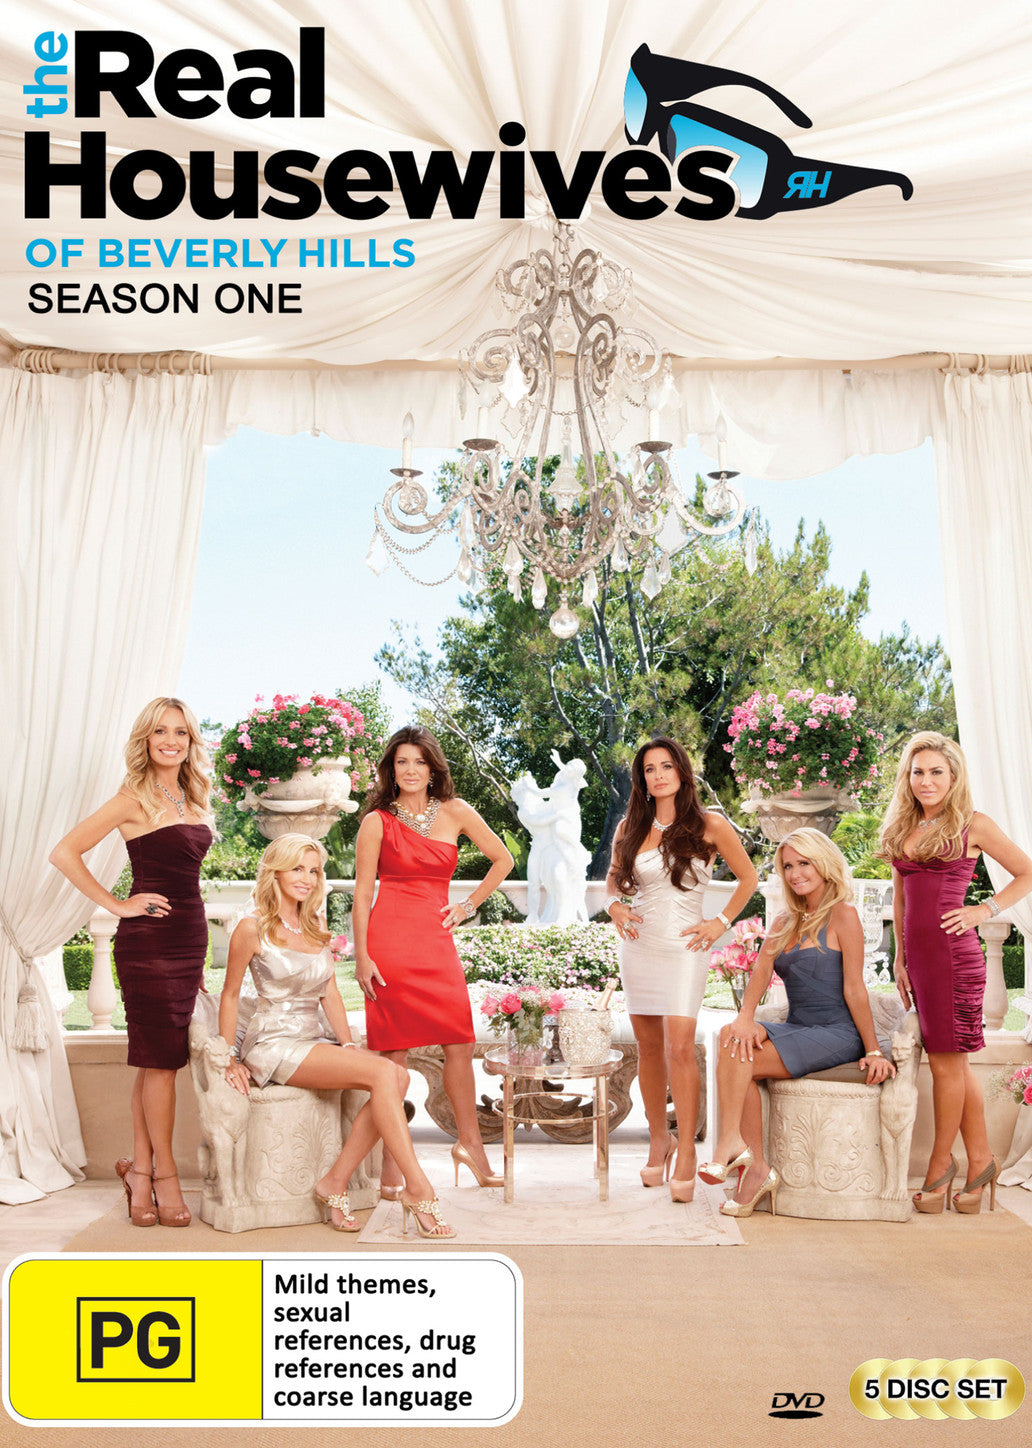 Real Housewives of Beverly Hills - Season 1 DVD